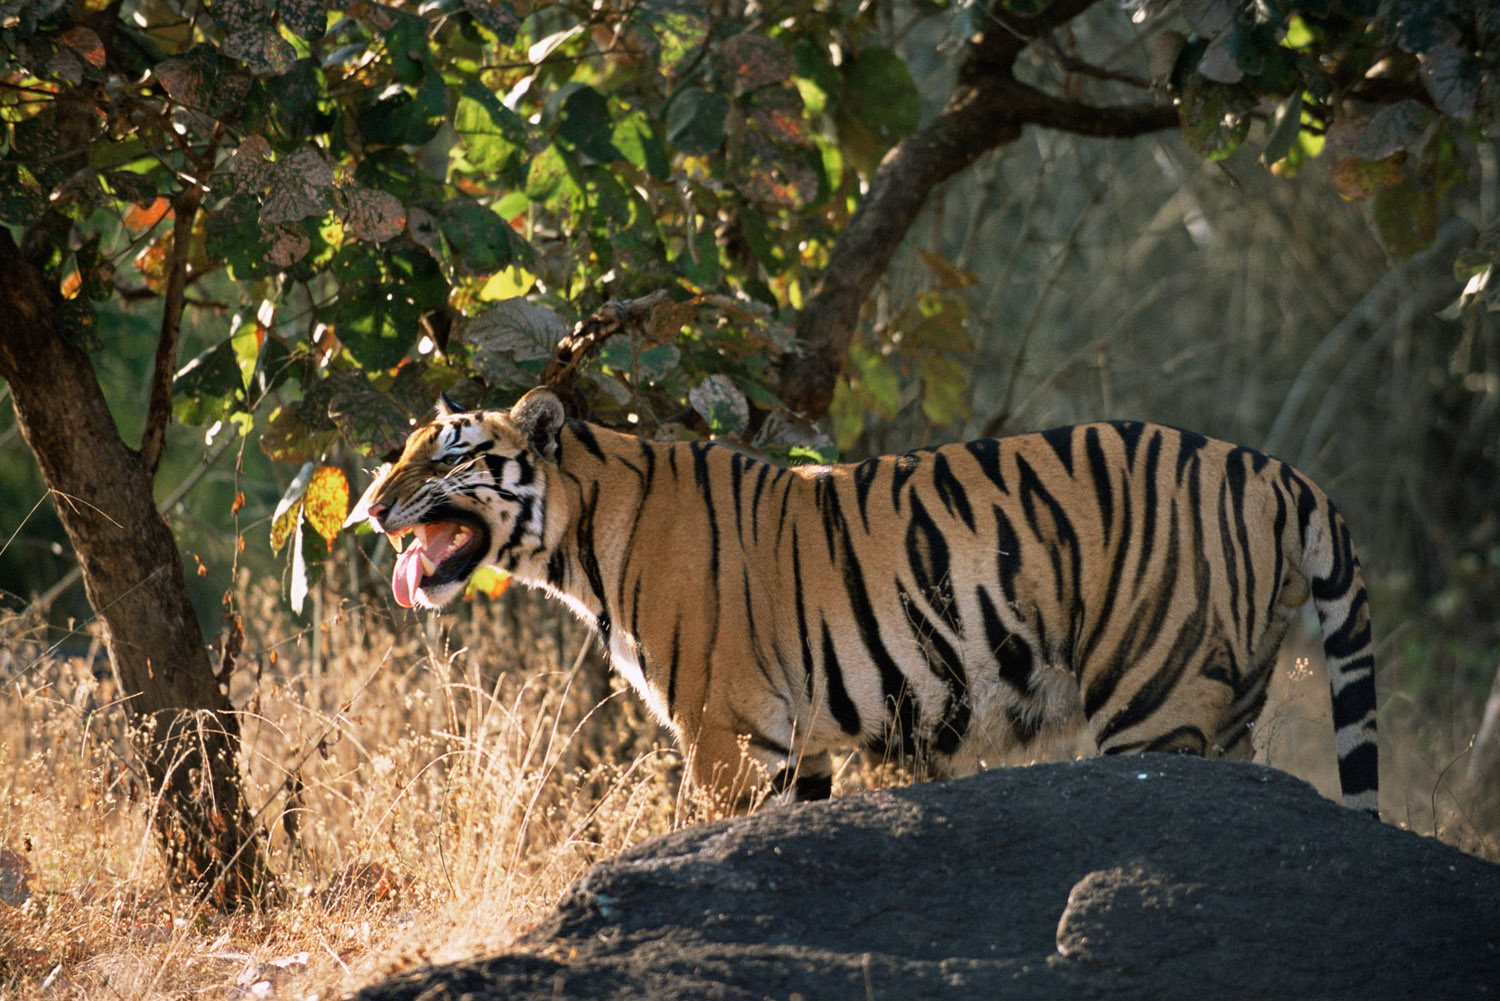 Bengal tiger displaying 'flehman' behaviour, Kanha National Park, Madhya Pradesh, India